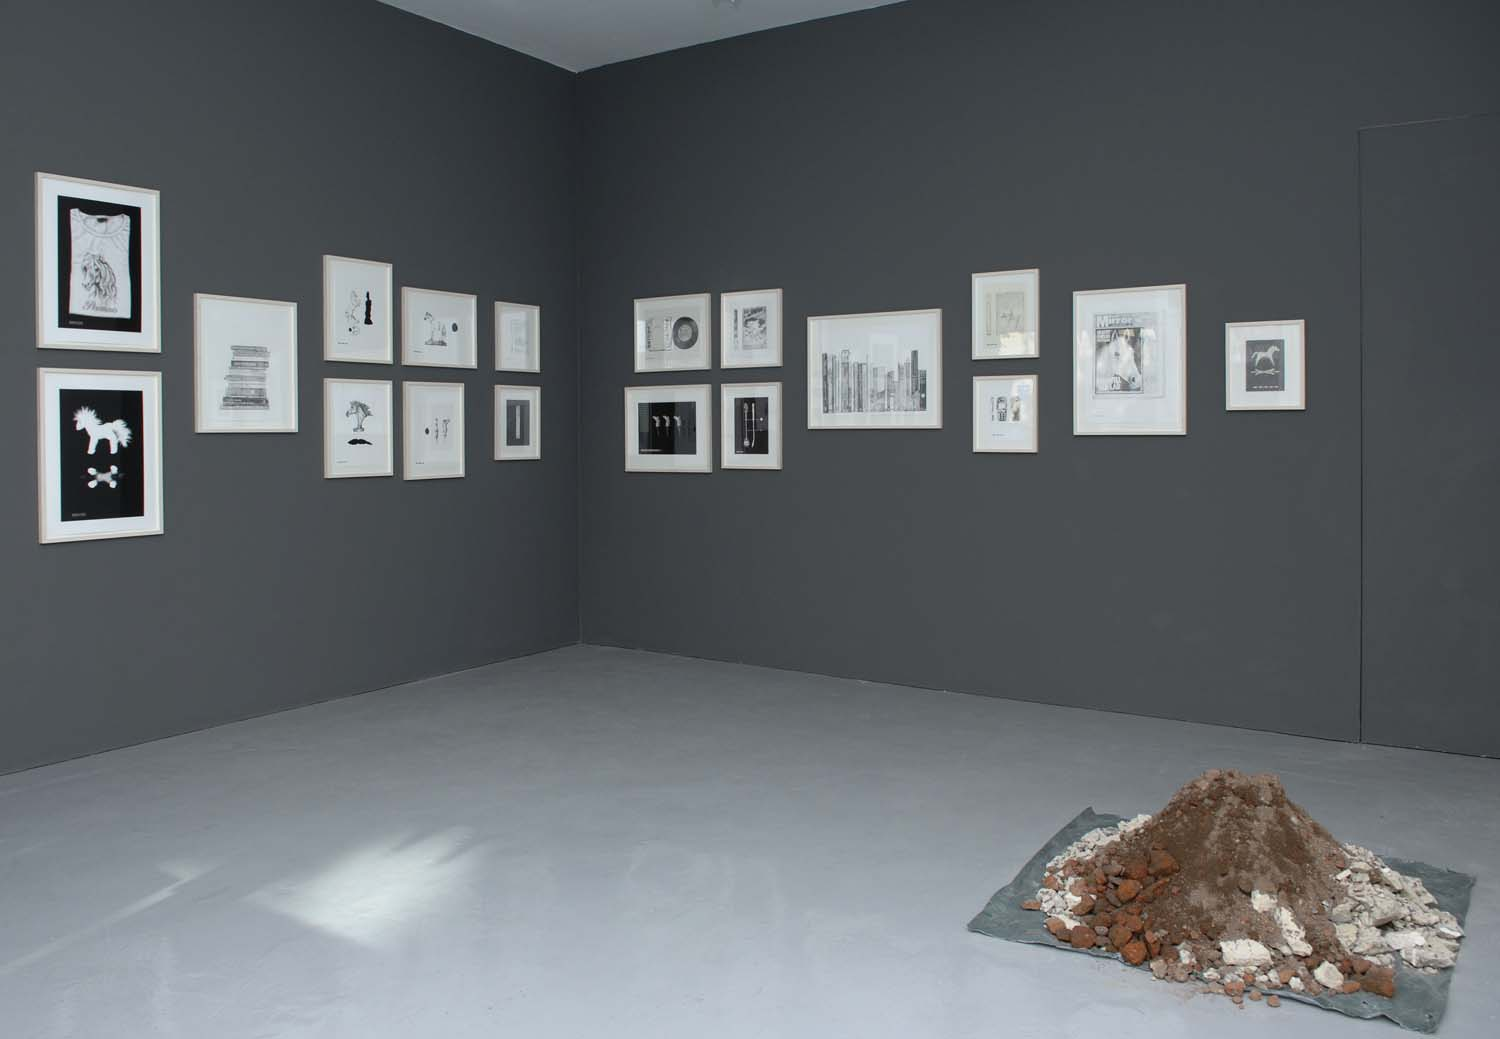 Installation view of gallery excavation in Small Finds